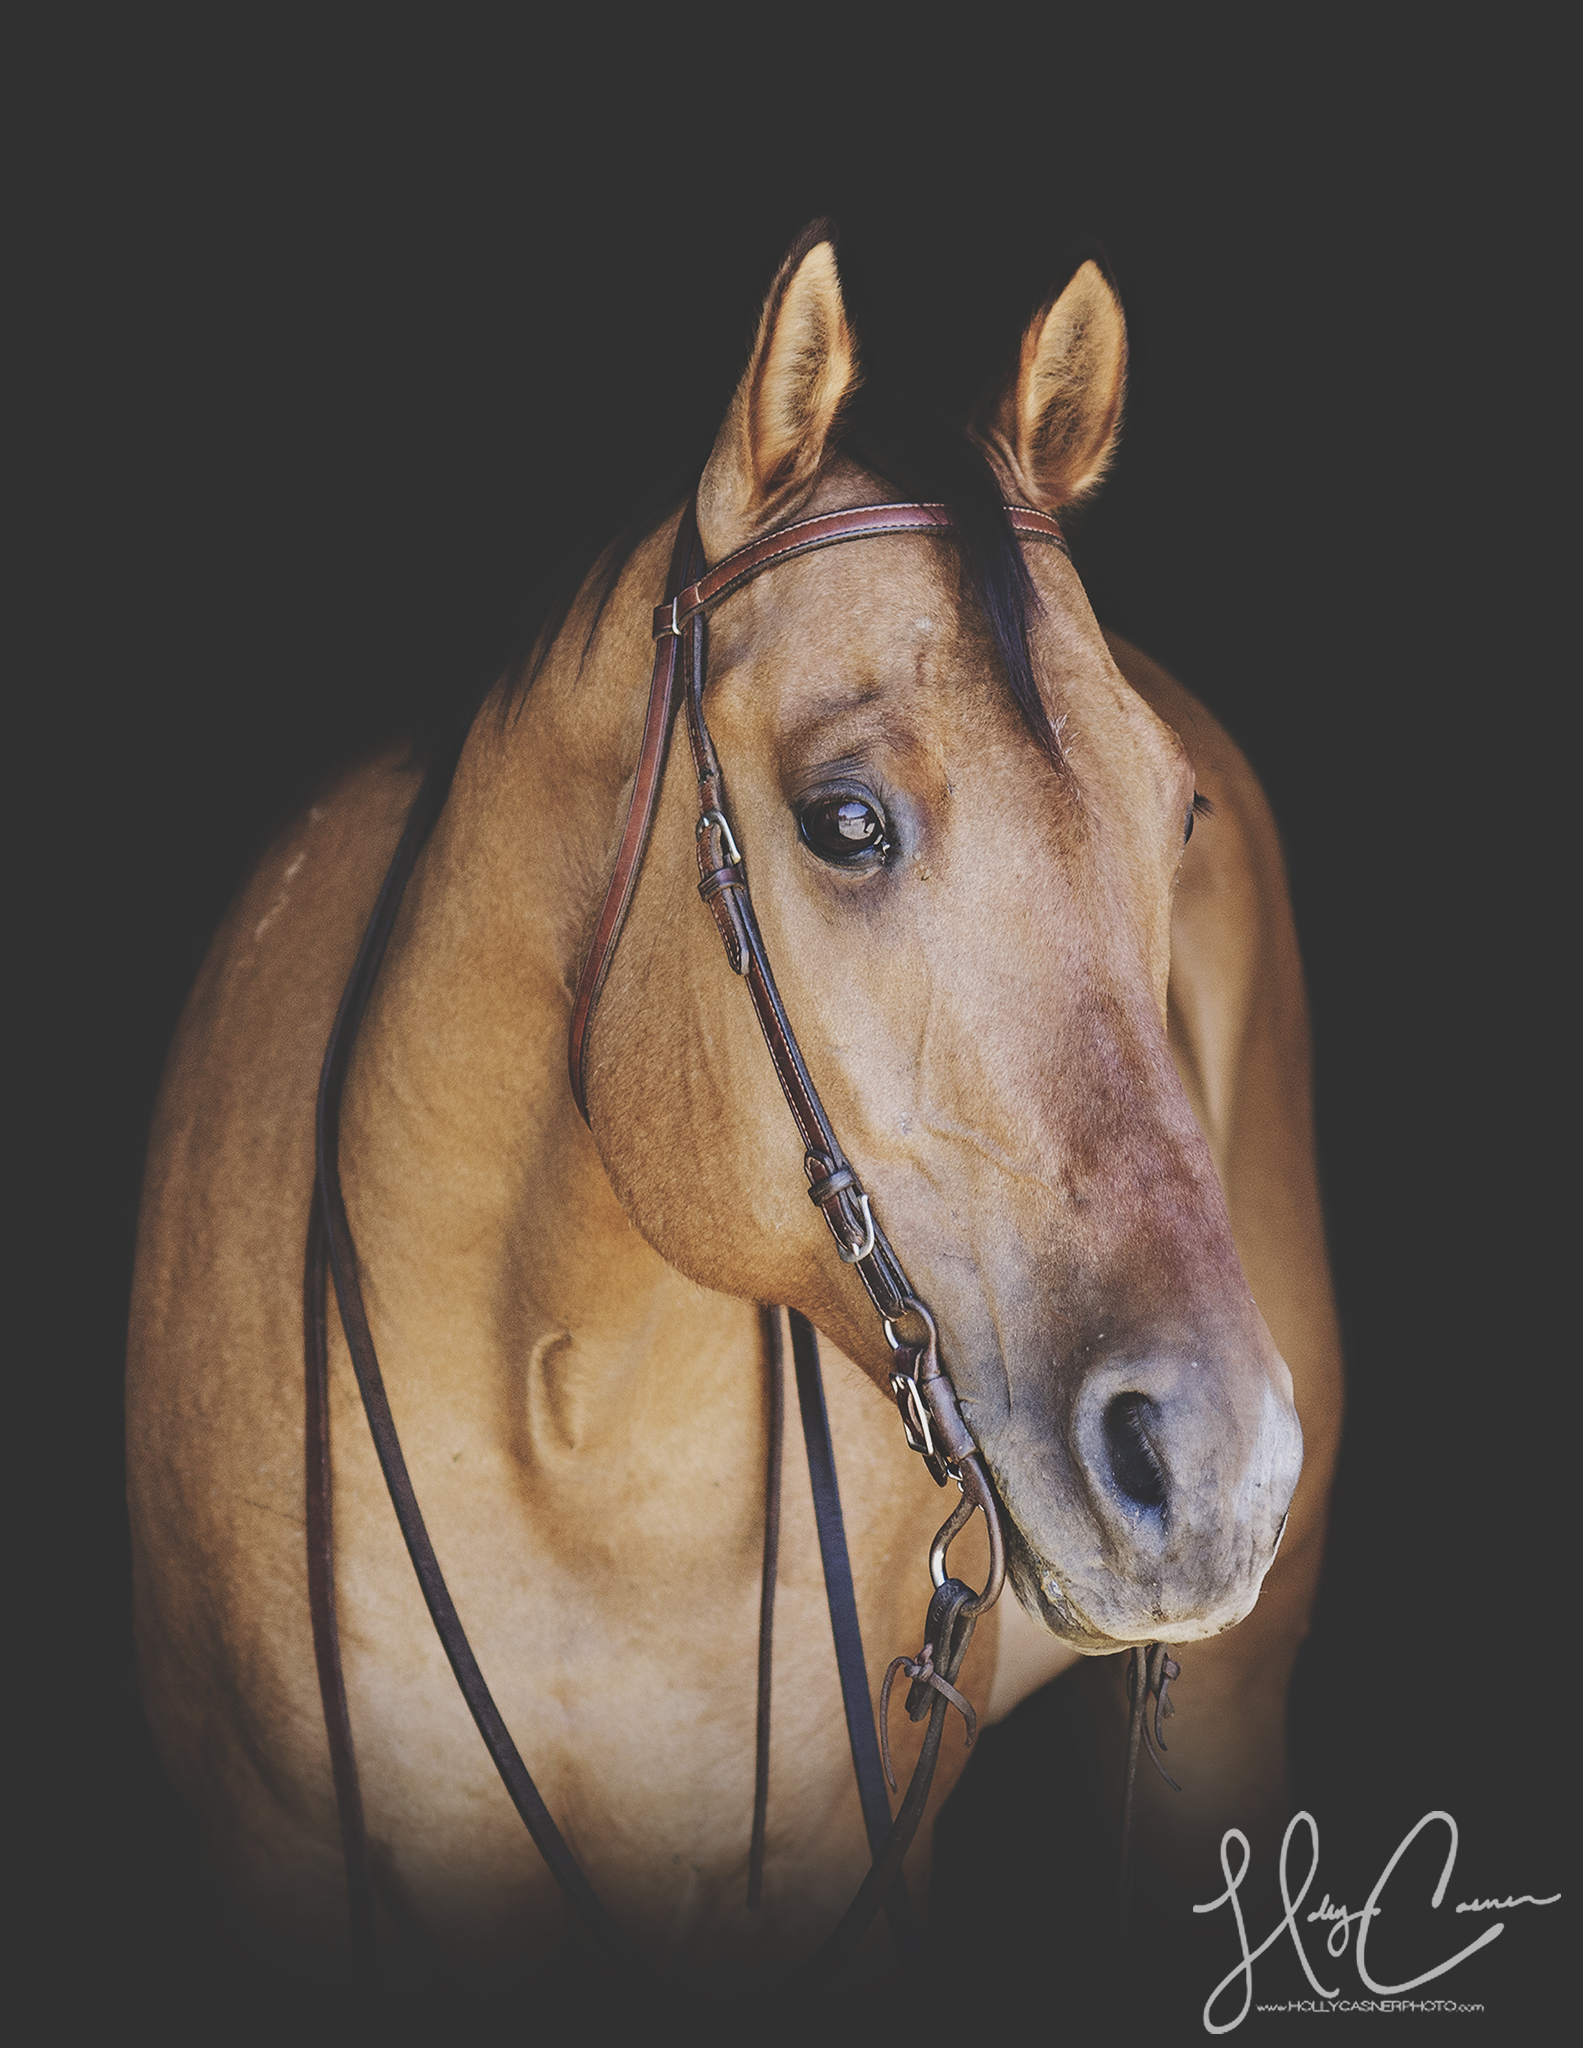 Holly Casner, The Equestrian Photographer – Black Background Portraits